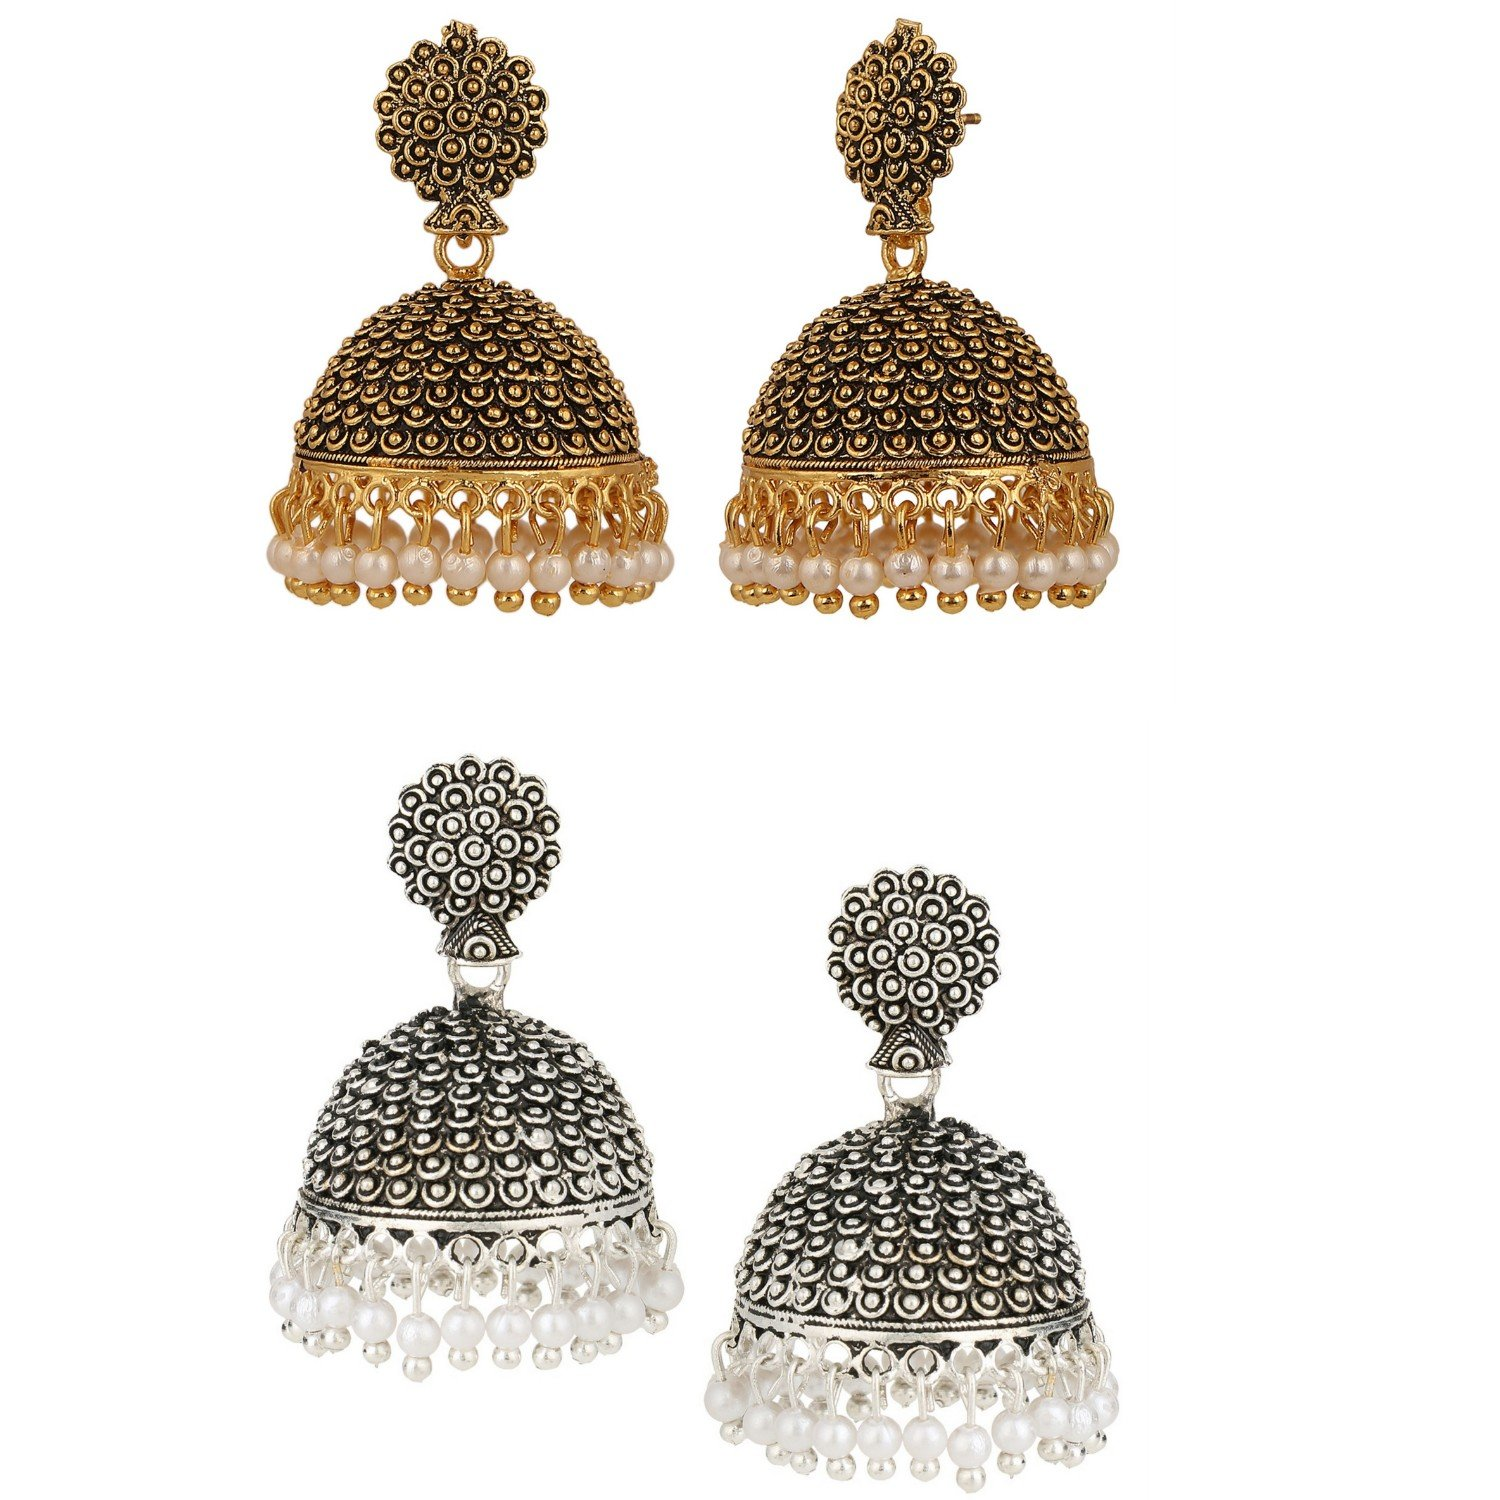 Efulgenz Indian Vintage Bollywood Gypsy Oxidized Gold Plated Traditional Jhumka Jhumki Earrings for Women and Girls (White+Yellow) by Efulgenz (Image #1)